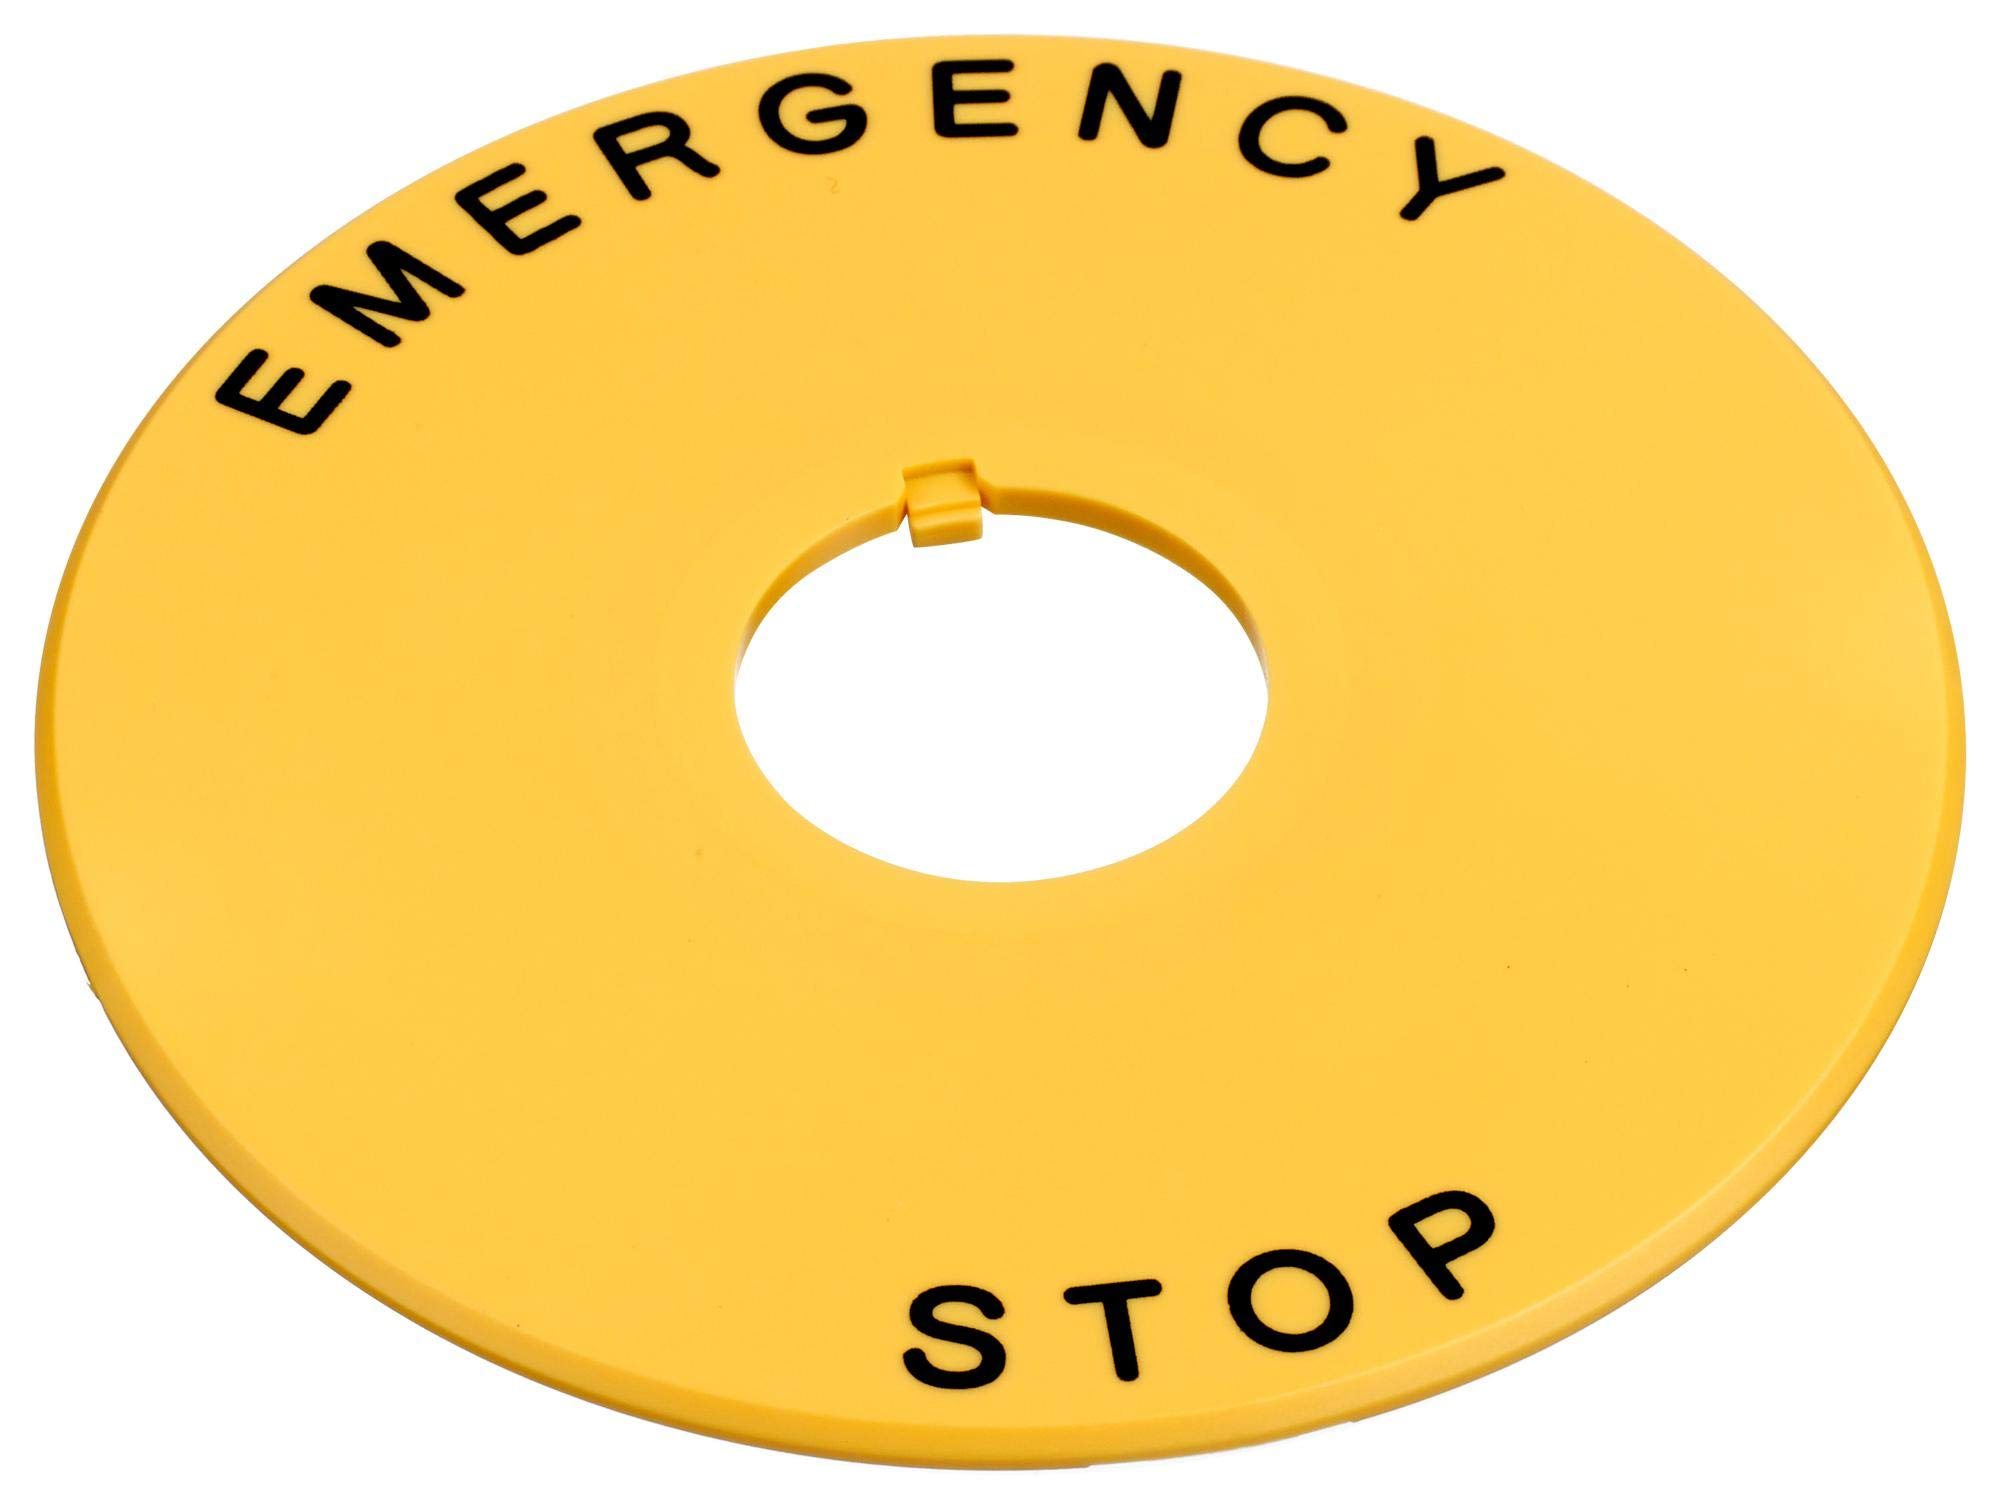 HWAV5-27 - Engraved Legend Nameplate, EMERGENCY STOP, Black on Yellow, Plastic, 80 mm OD/22 mm ID, HW Series (Pack of 5) (HWAV5-27)